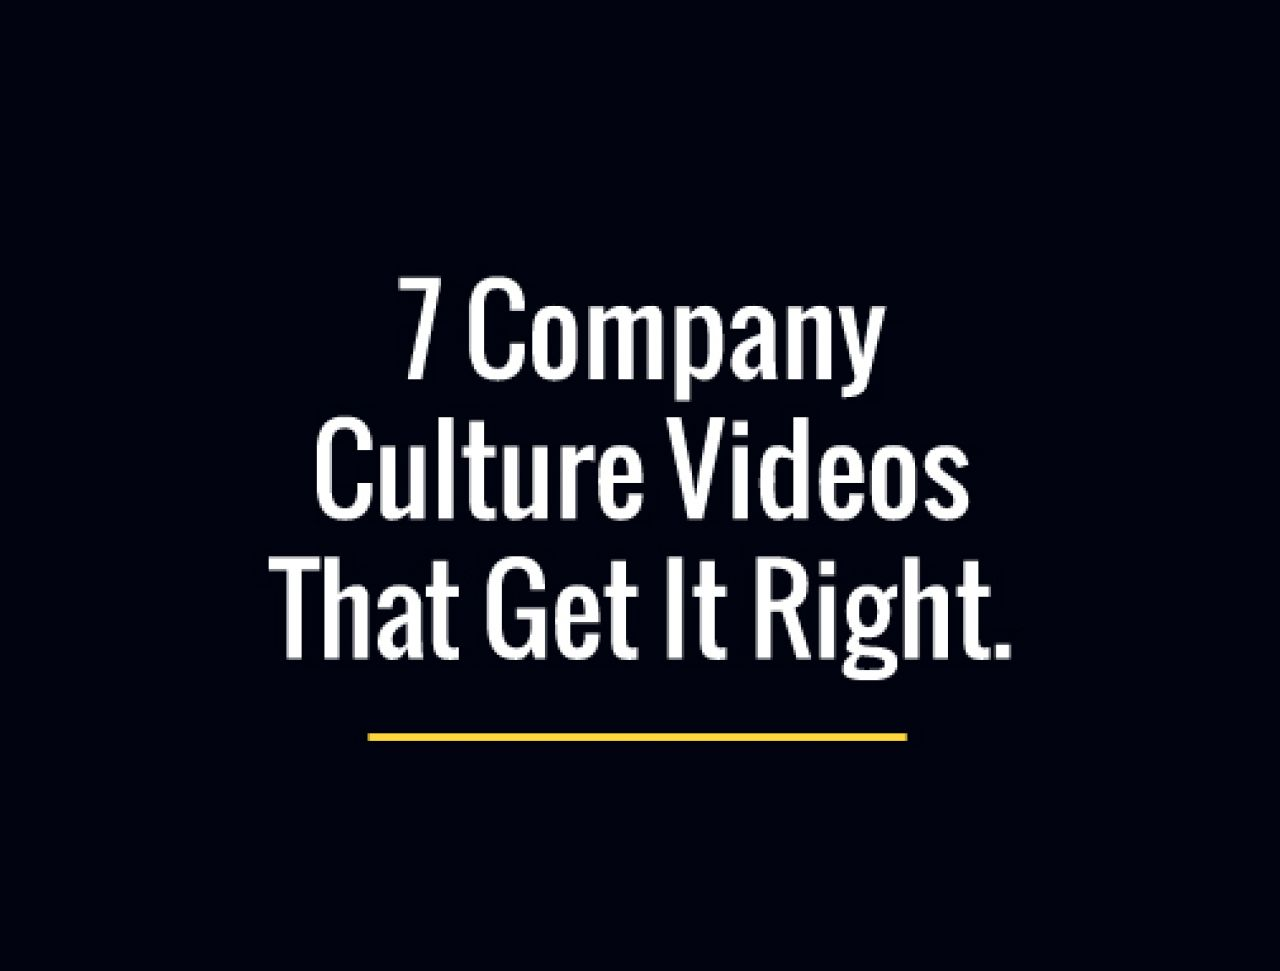 Corporate Video Maker | DIY Corporate Video Production In Minutes